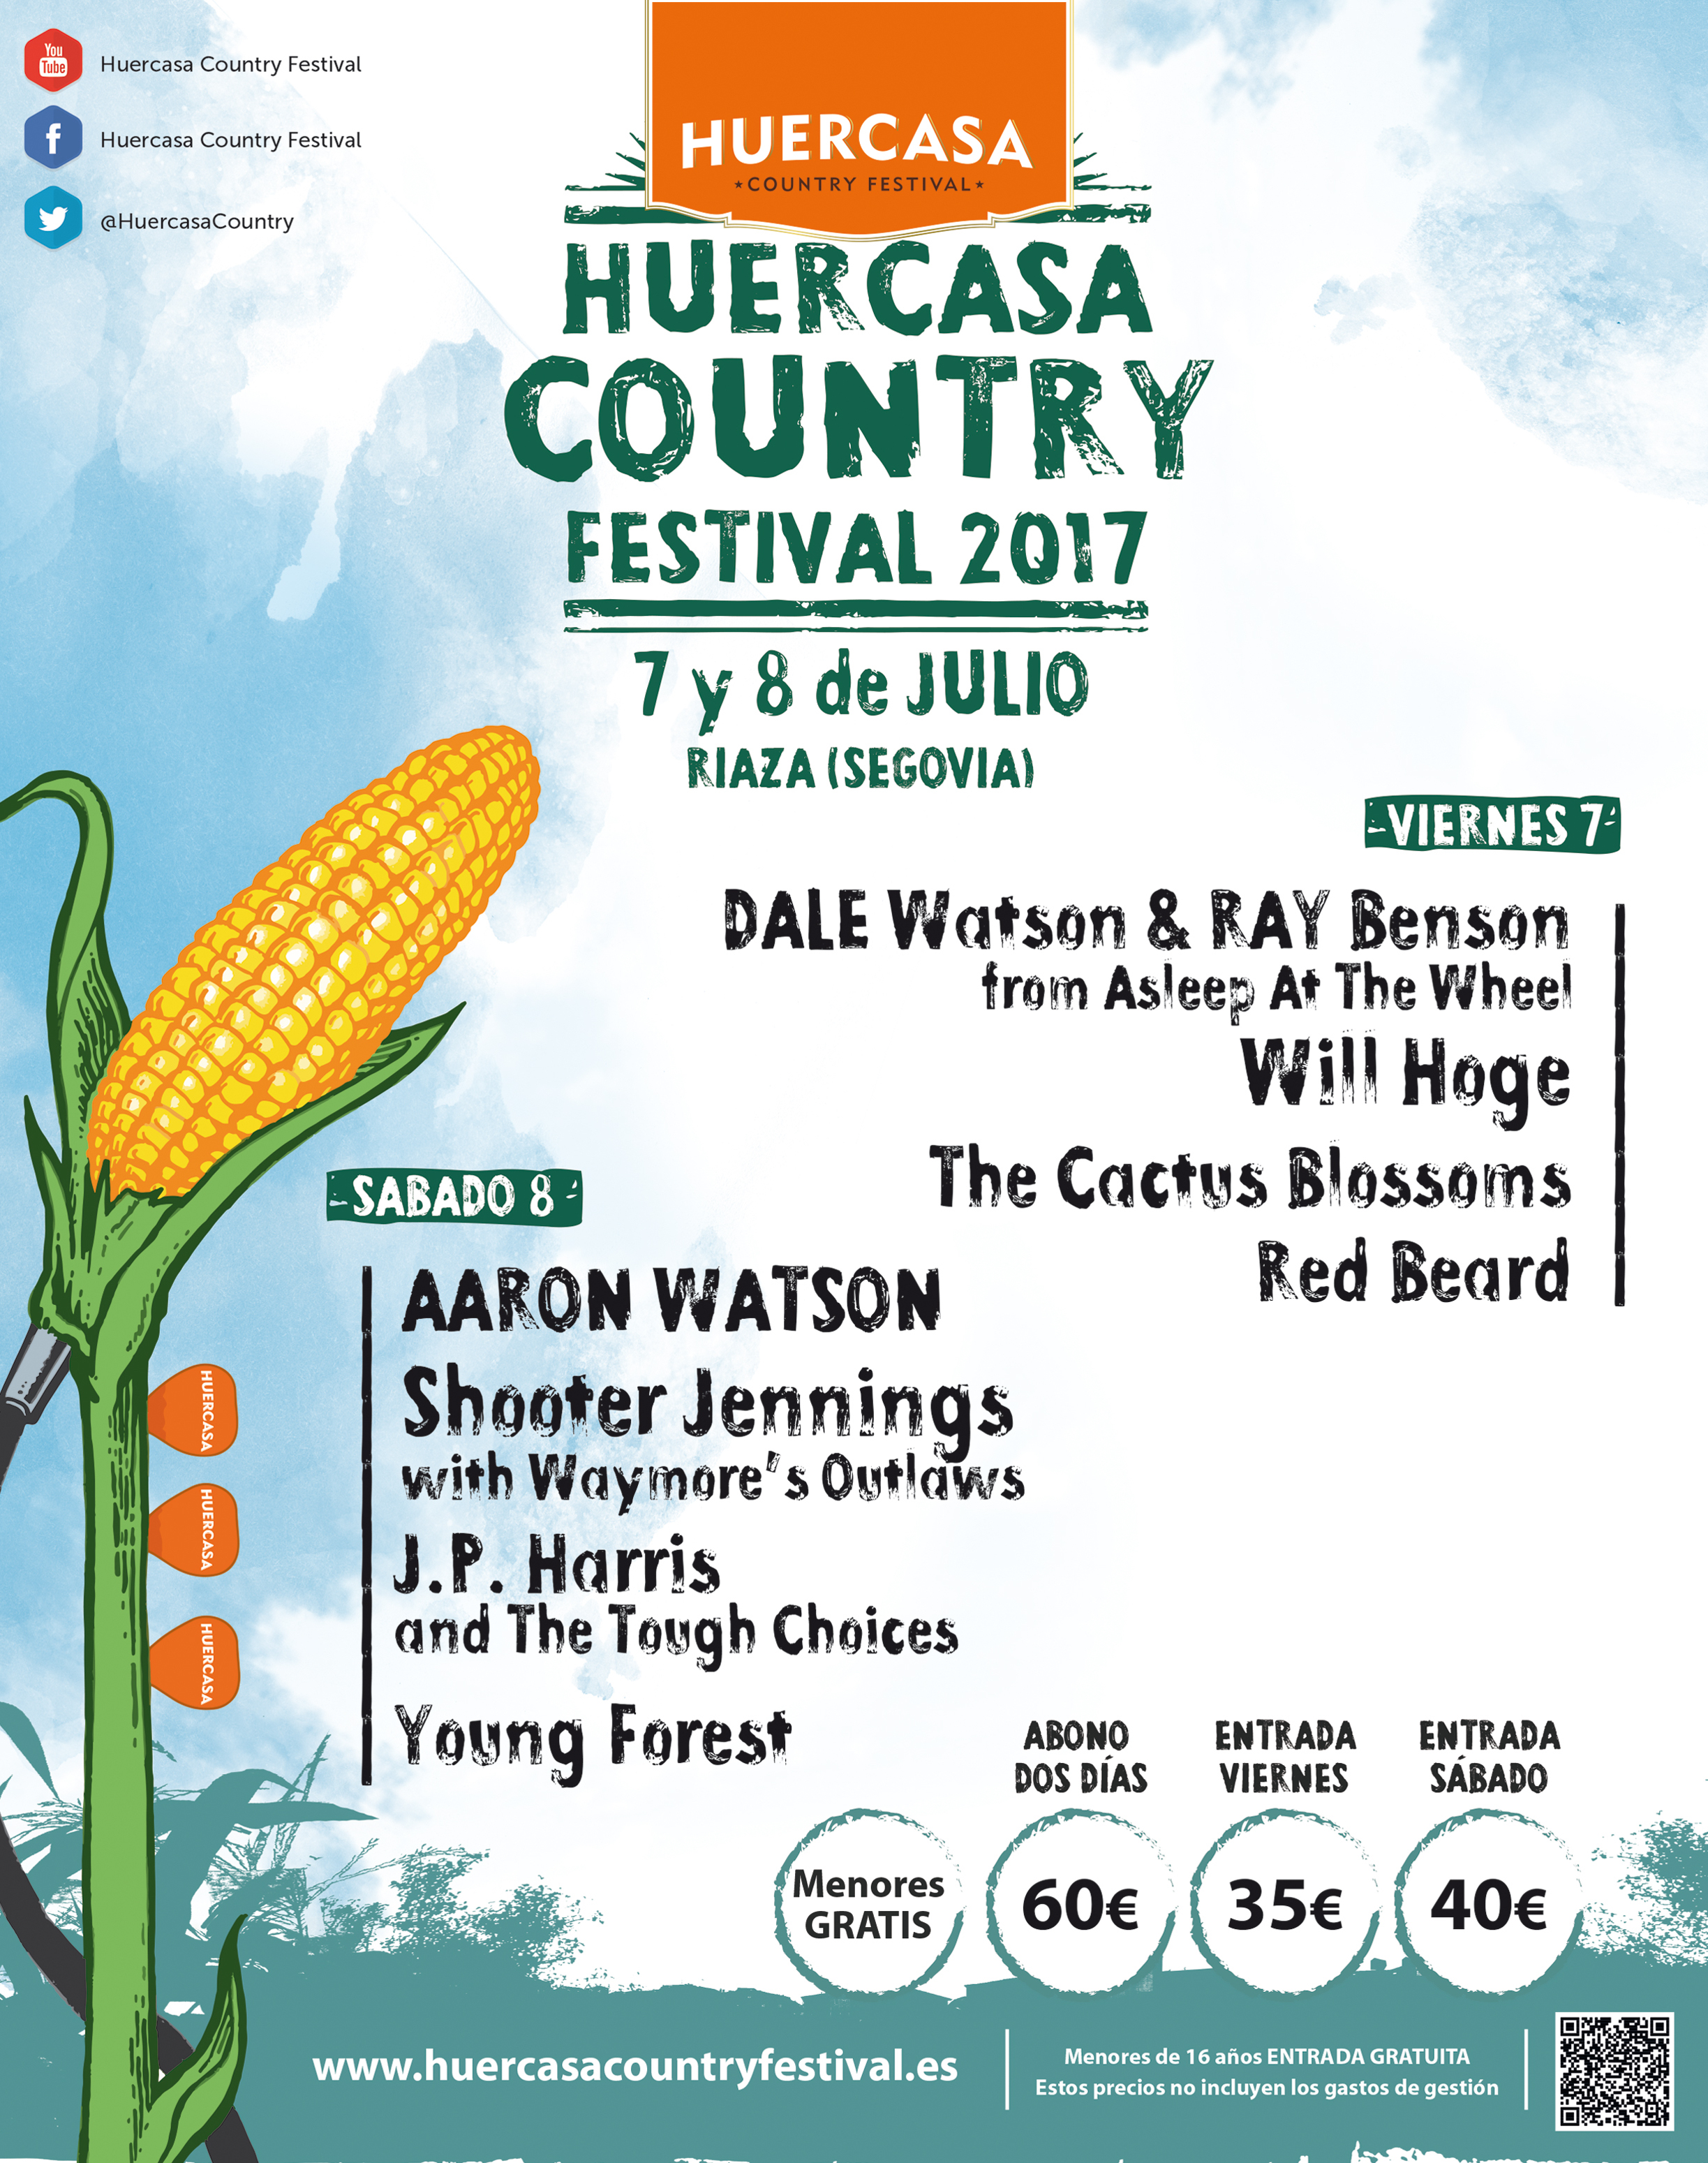 hcf2017_cartel_definitivo 28marzo